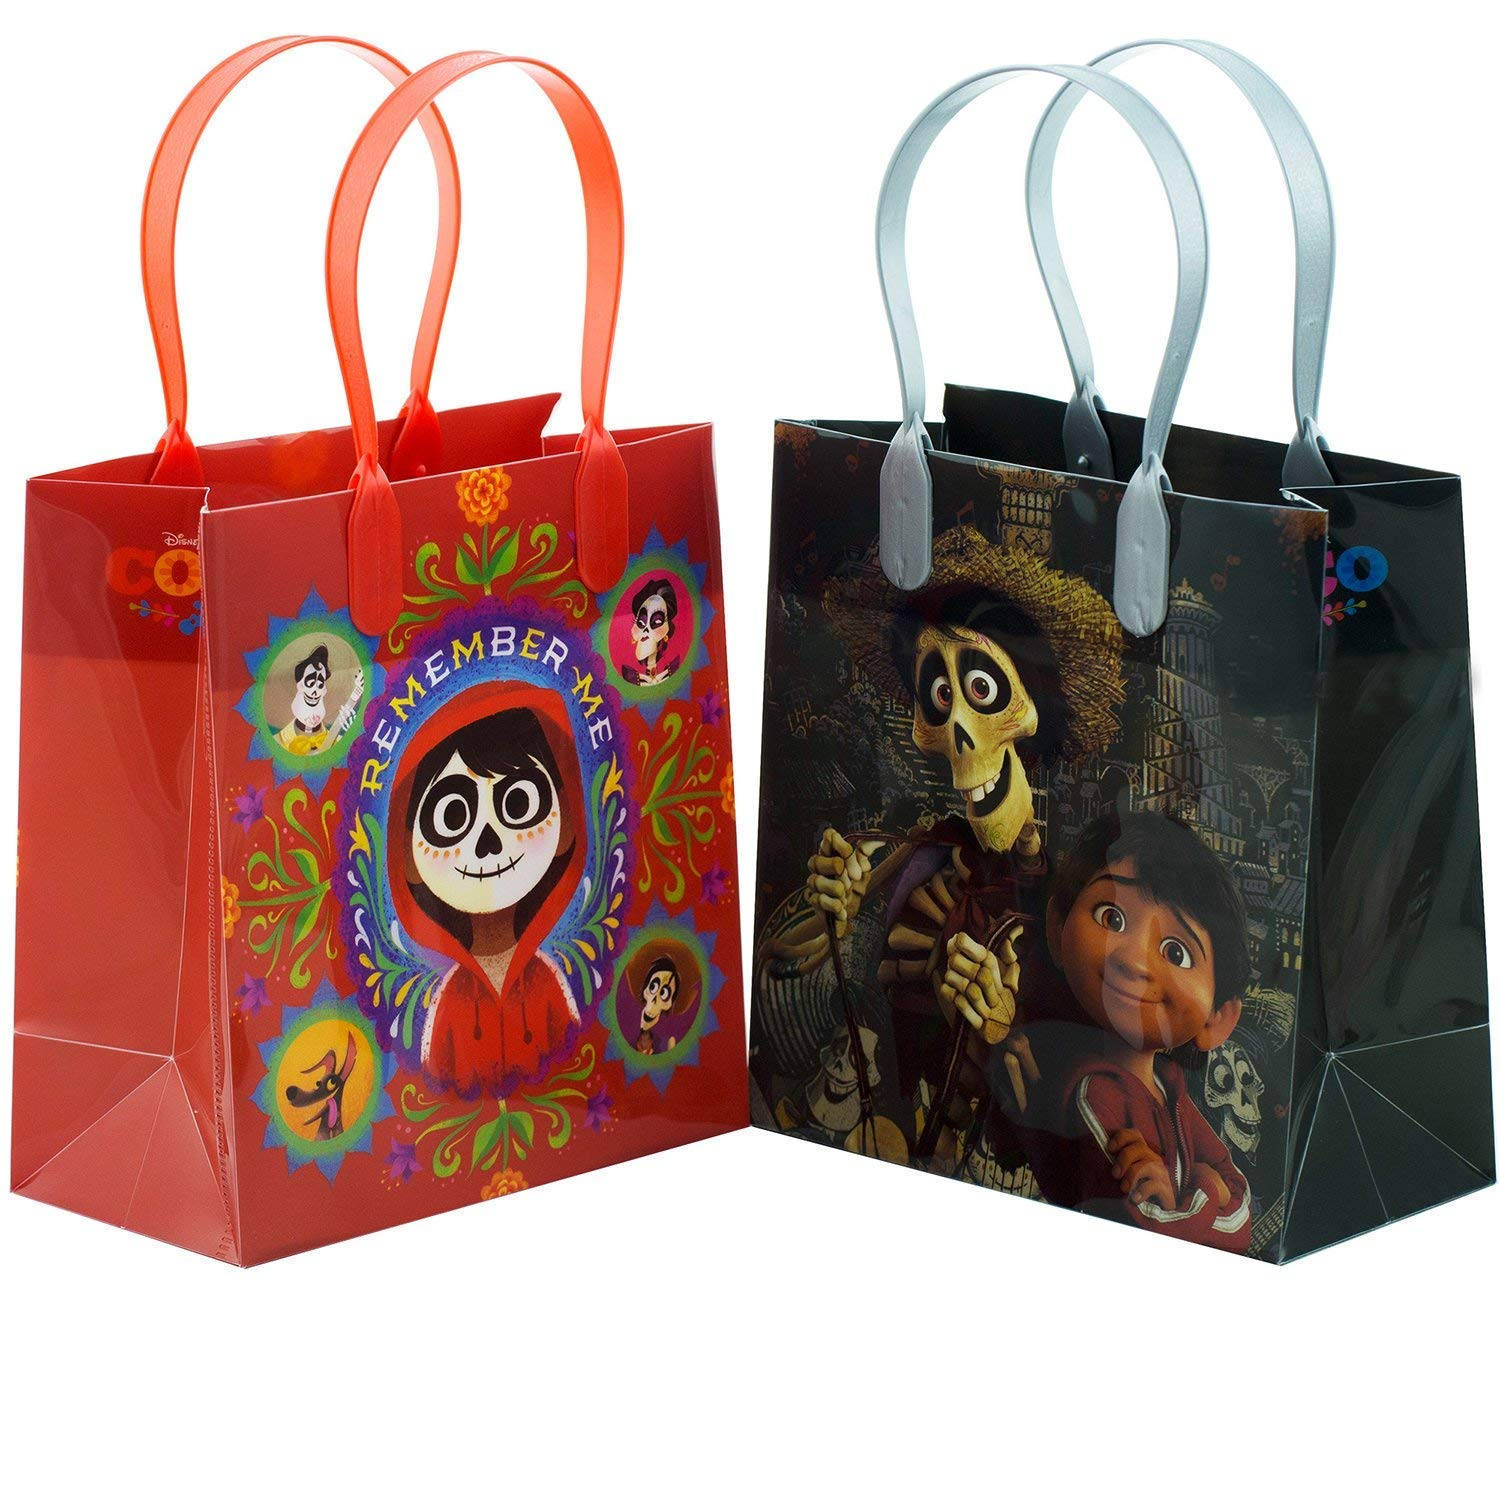 Disney/Pixar Coco Premium Quality Party Favor Reusable Goodie/Gift/Bags 12 Pieces by Disney